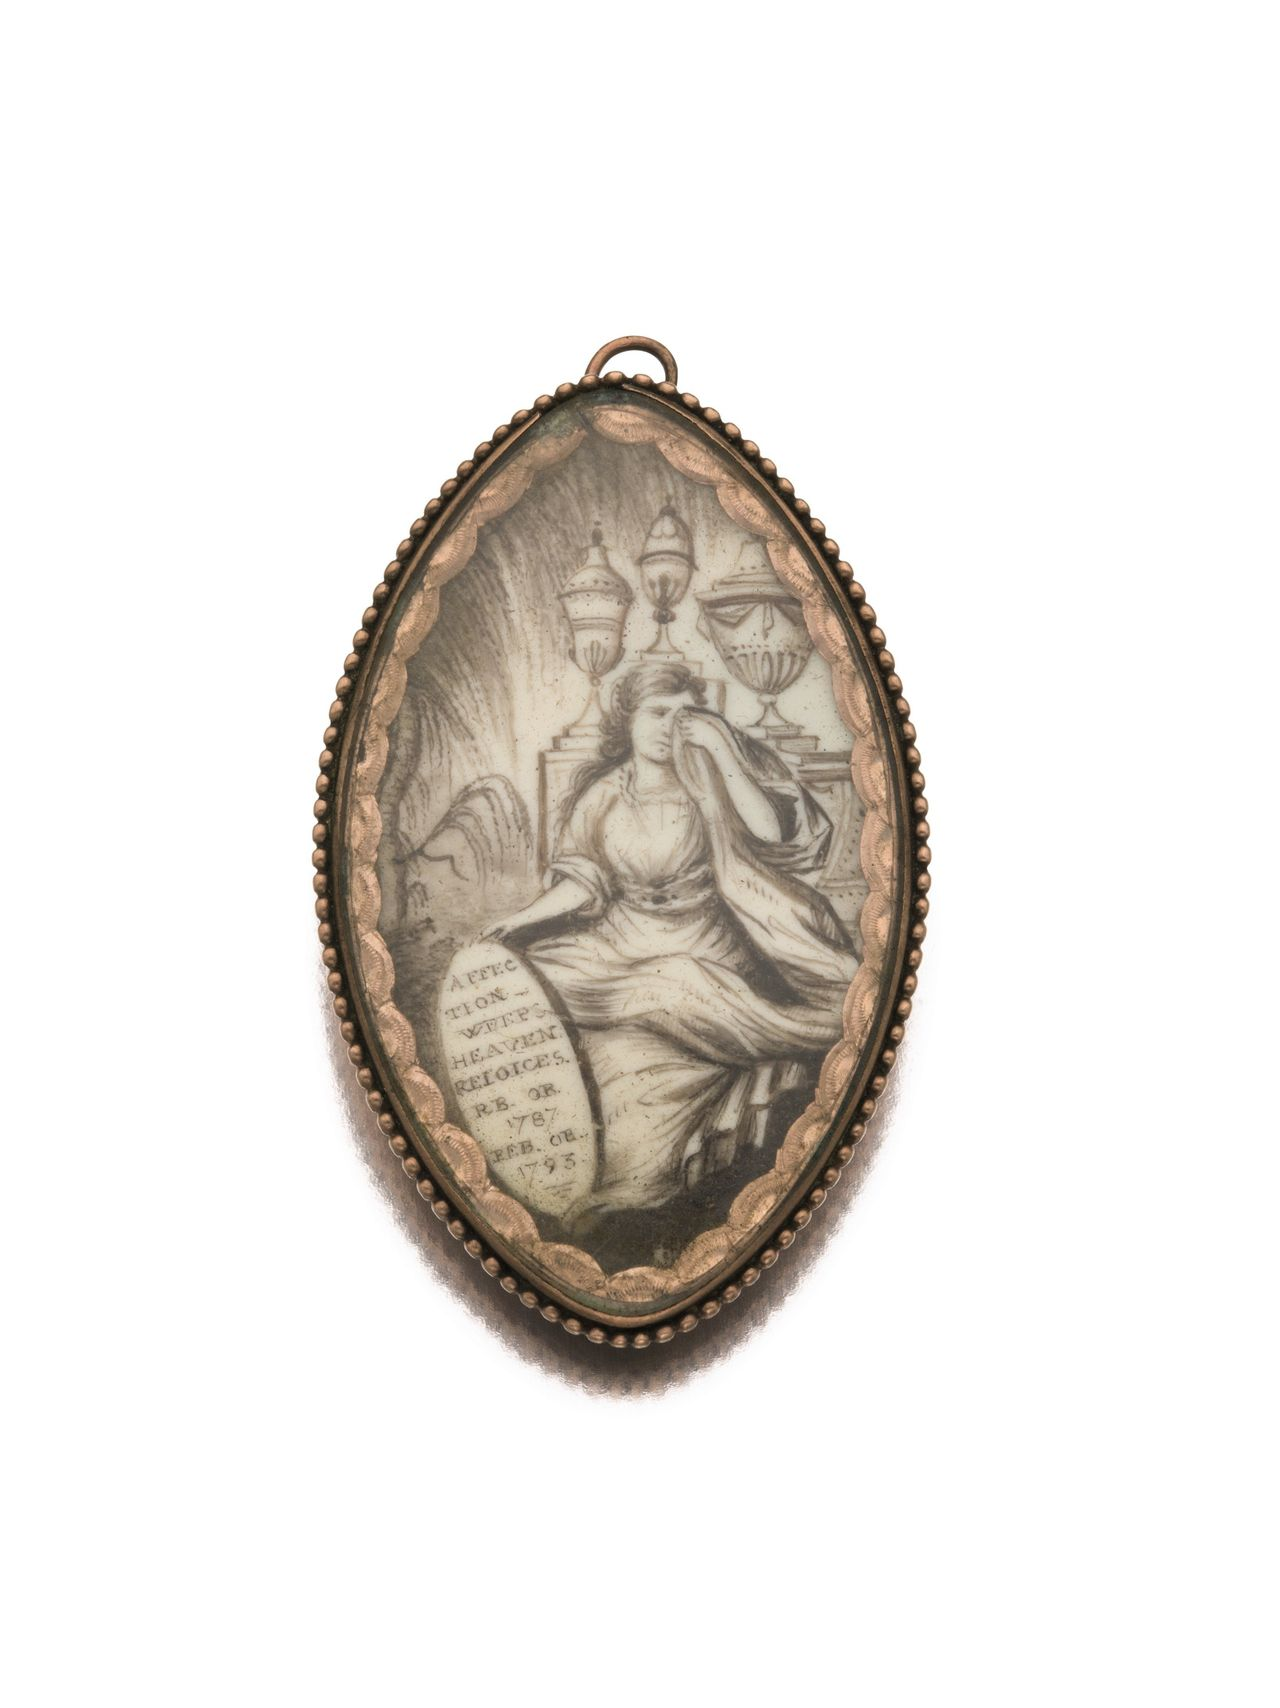 American Gold And Ivory Mourning Pin, Dated 1793